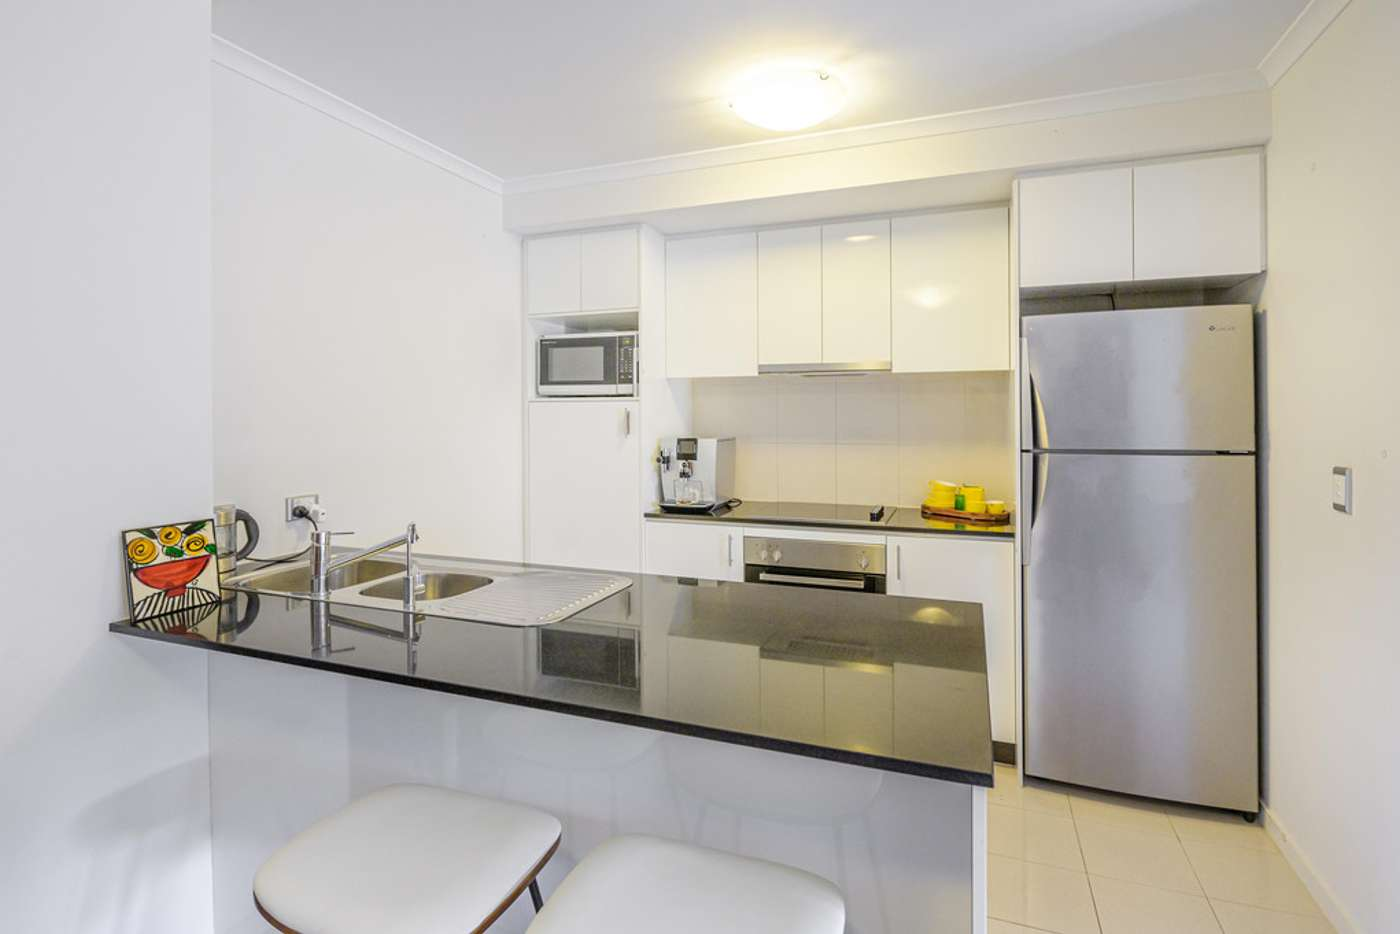 Sixth view of Homely apartment listing, 27/189 Swansea Street East, East Victoria Park WA 6101